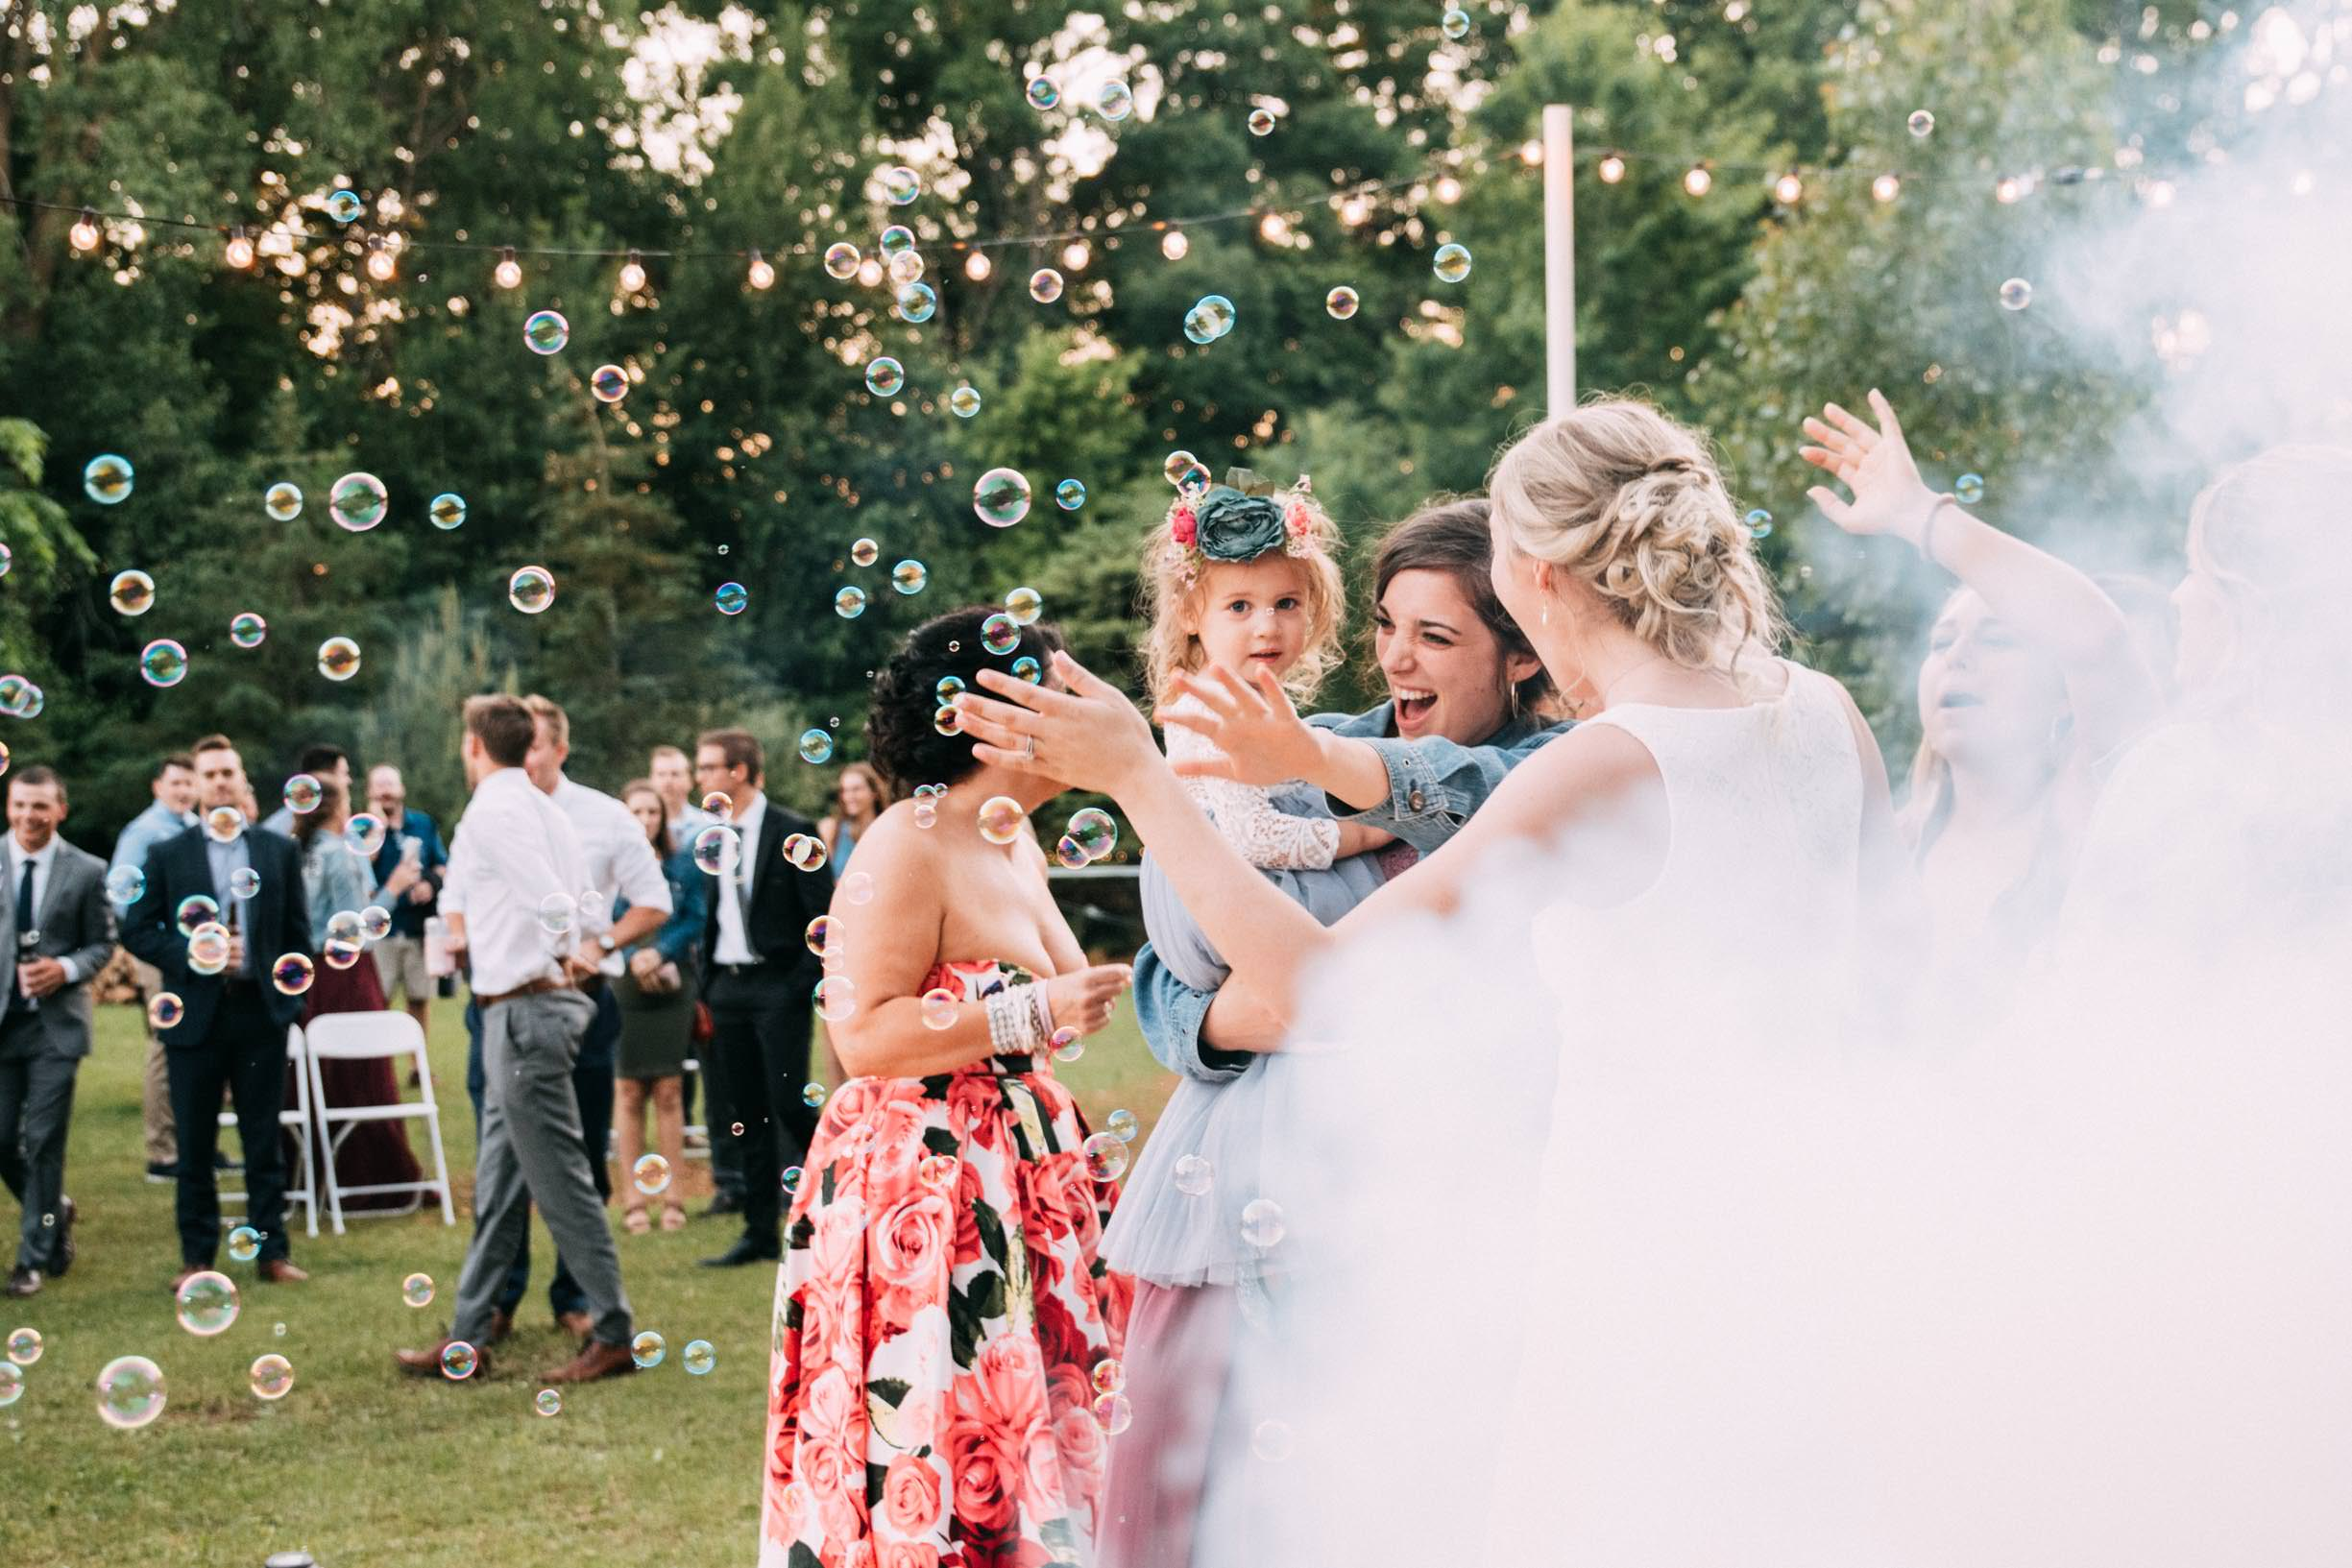 Carley_Trammell_GreenBay_Backyard_Wedding_Blog-111.jpg